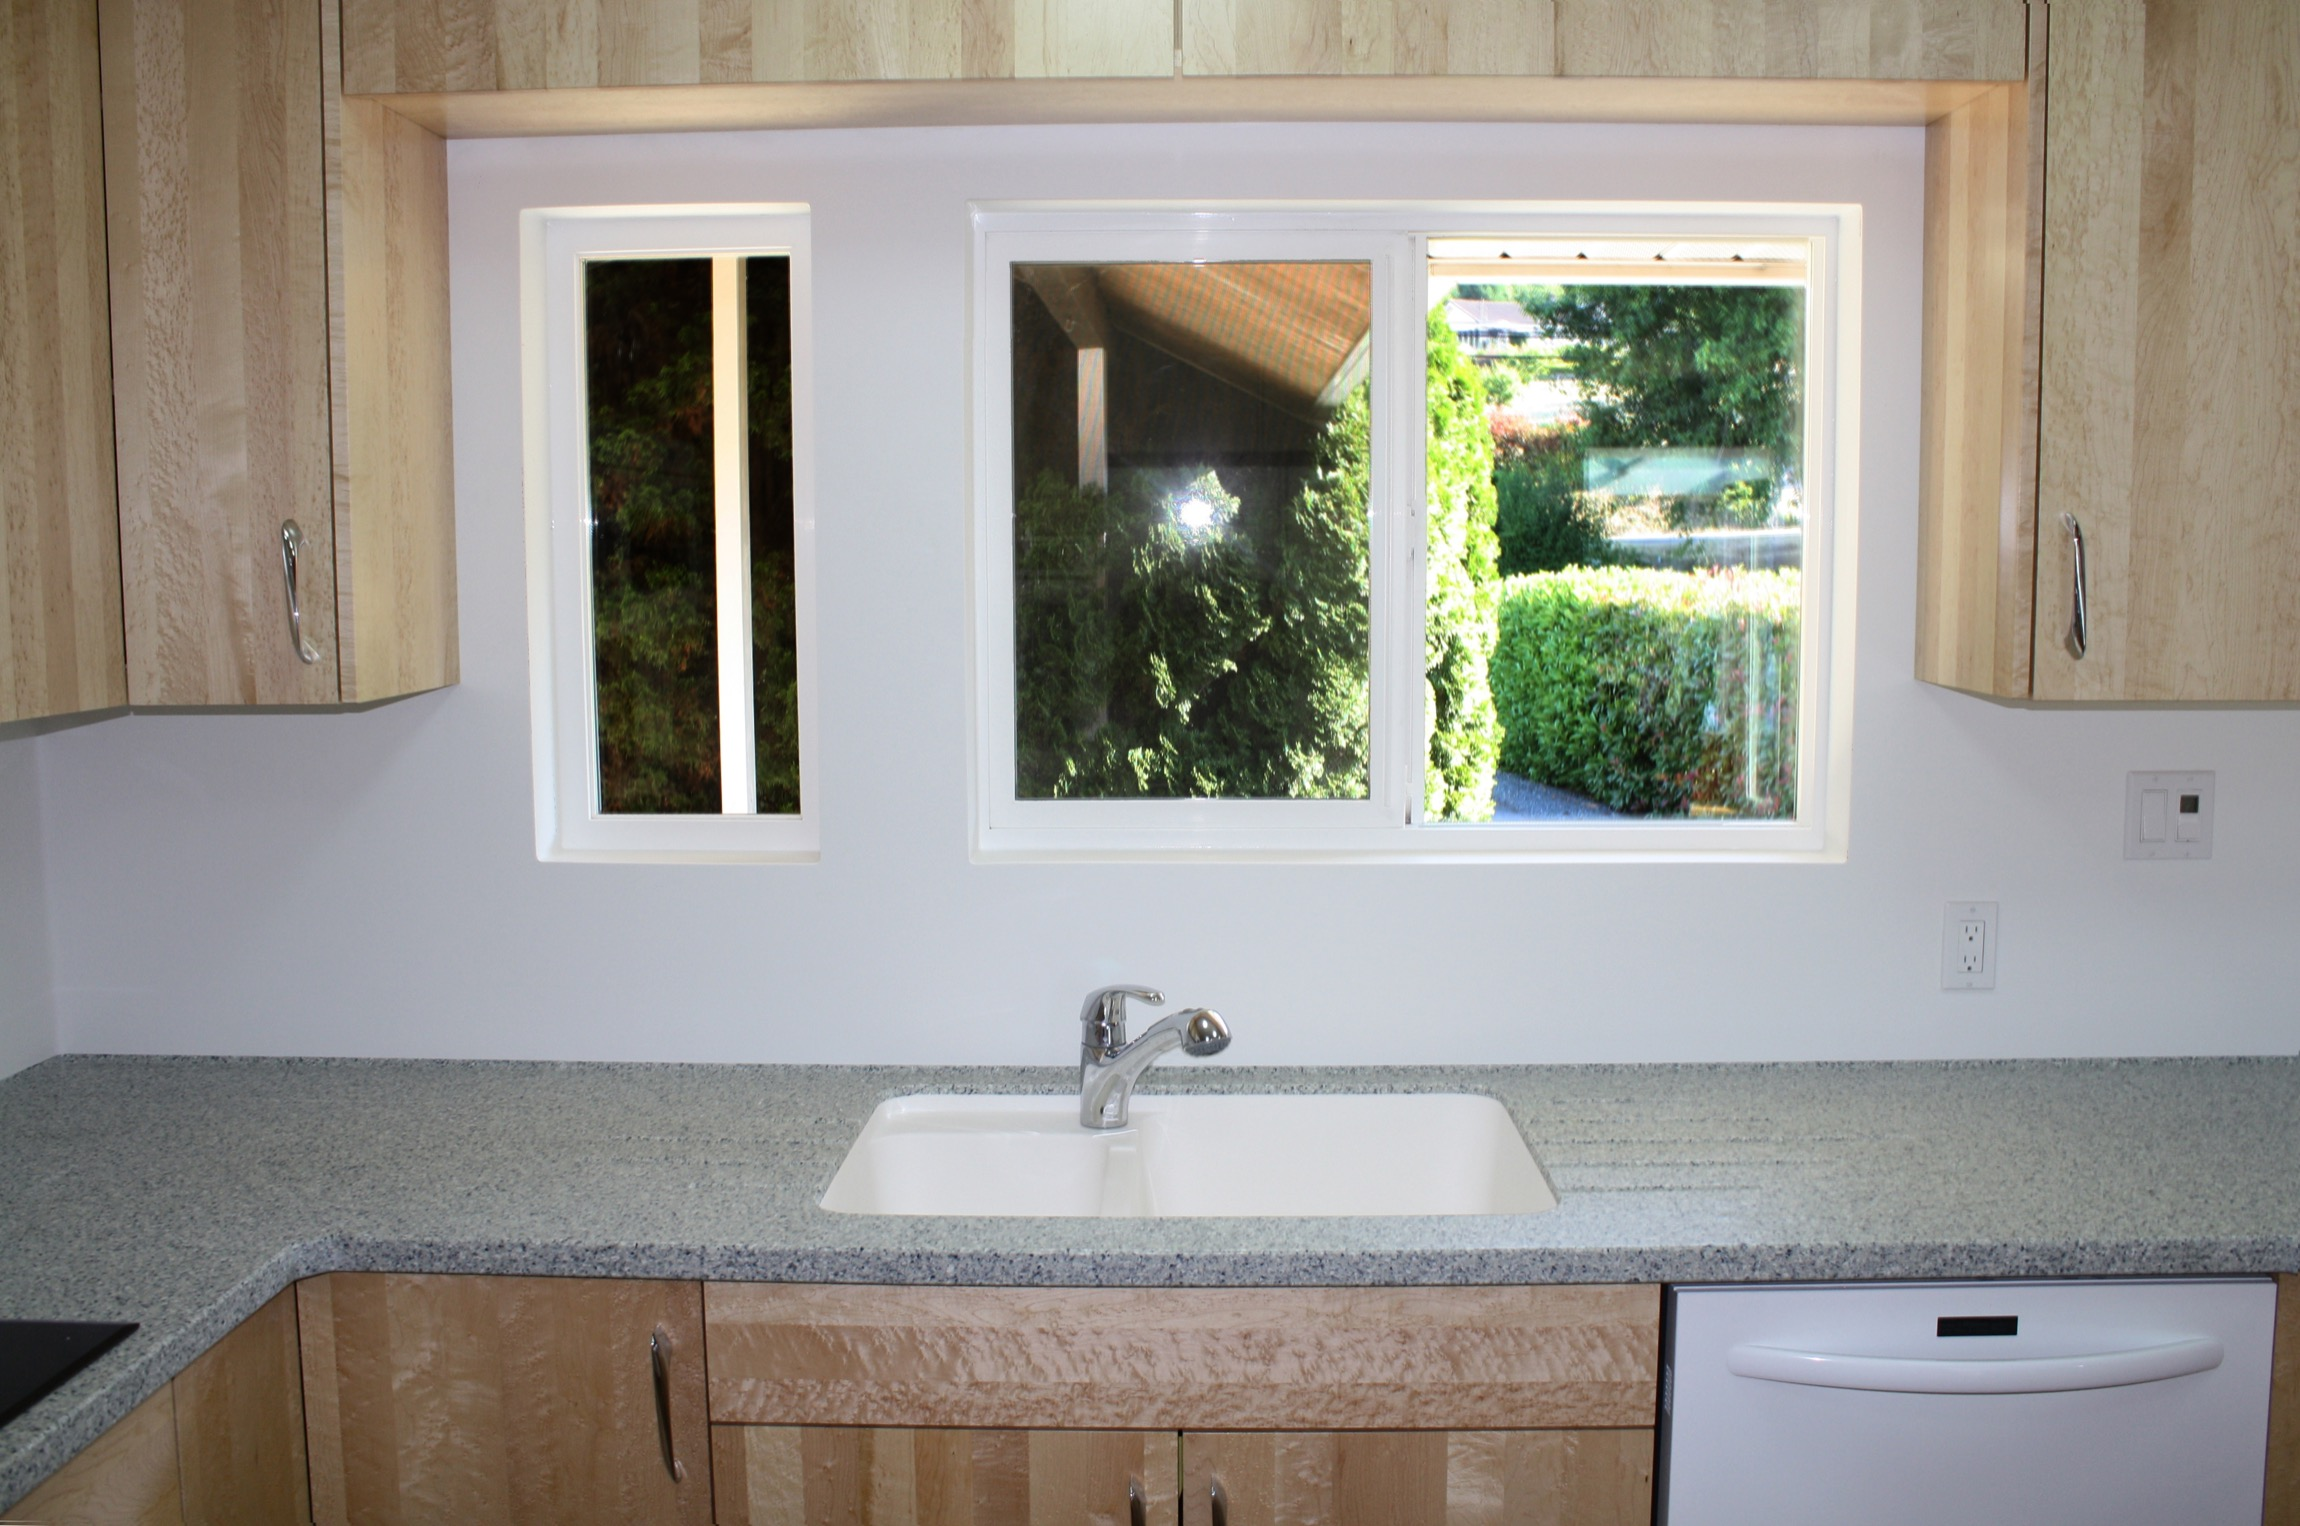 Vancouver Island Karadon Countertop And Full Height Backsplash Sink Area Two Design